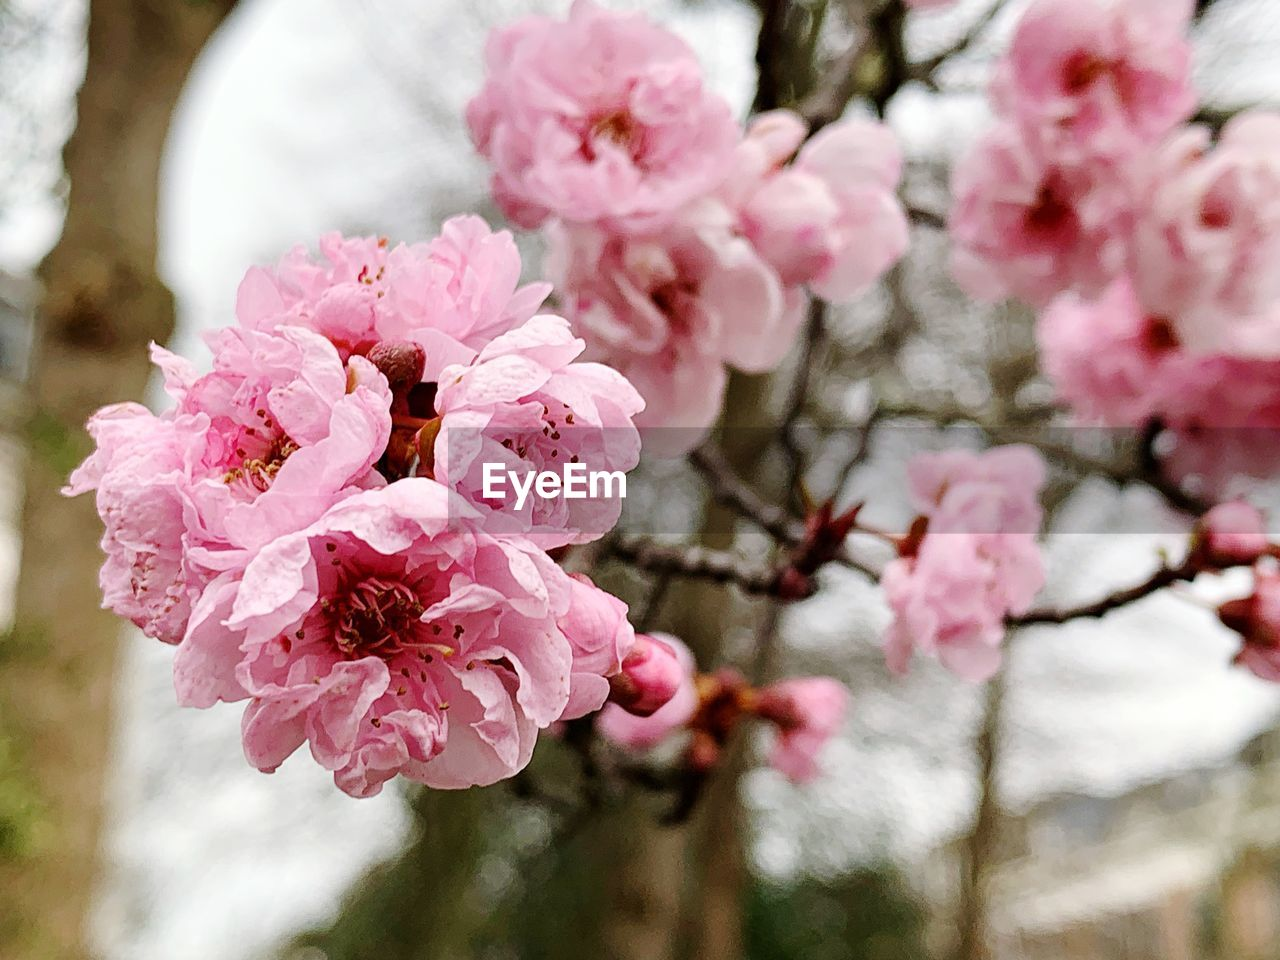 flowering plant, flower, pink color, plant, freshness, fragility, beauty in nature, blossom, vulnerability, tree, springtime, petal, close-up, growth, cherry blossom, branch, inflorescence, cherry tree, flower head, nature, no people, outdoors, pollen, bunch of flowers, plum blossom, spring